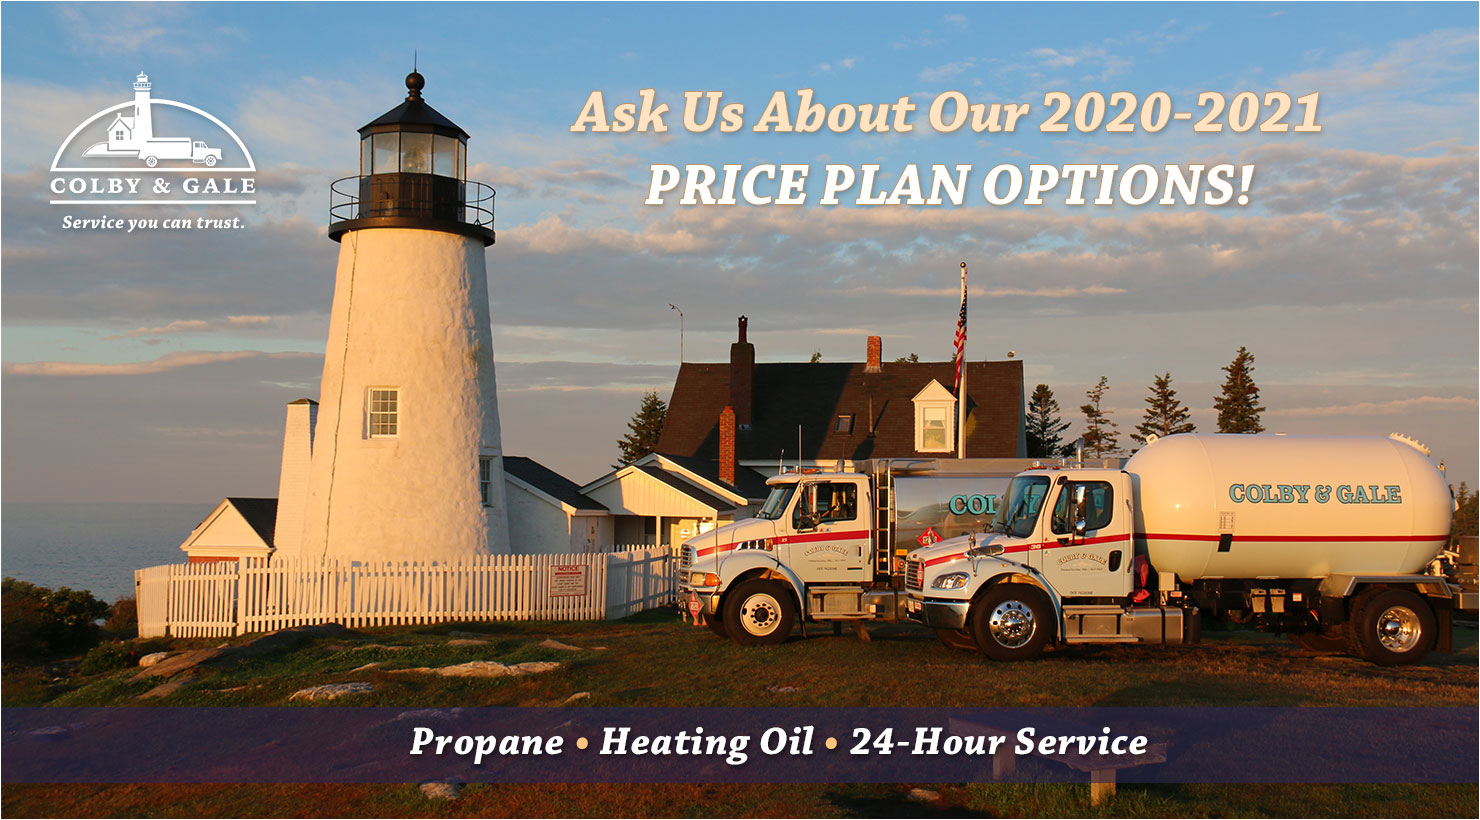 A photo of Pemaquid Point Lighthouse in Maine with Colby & Gale trucks in front.